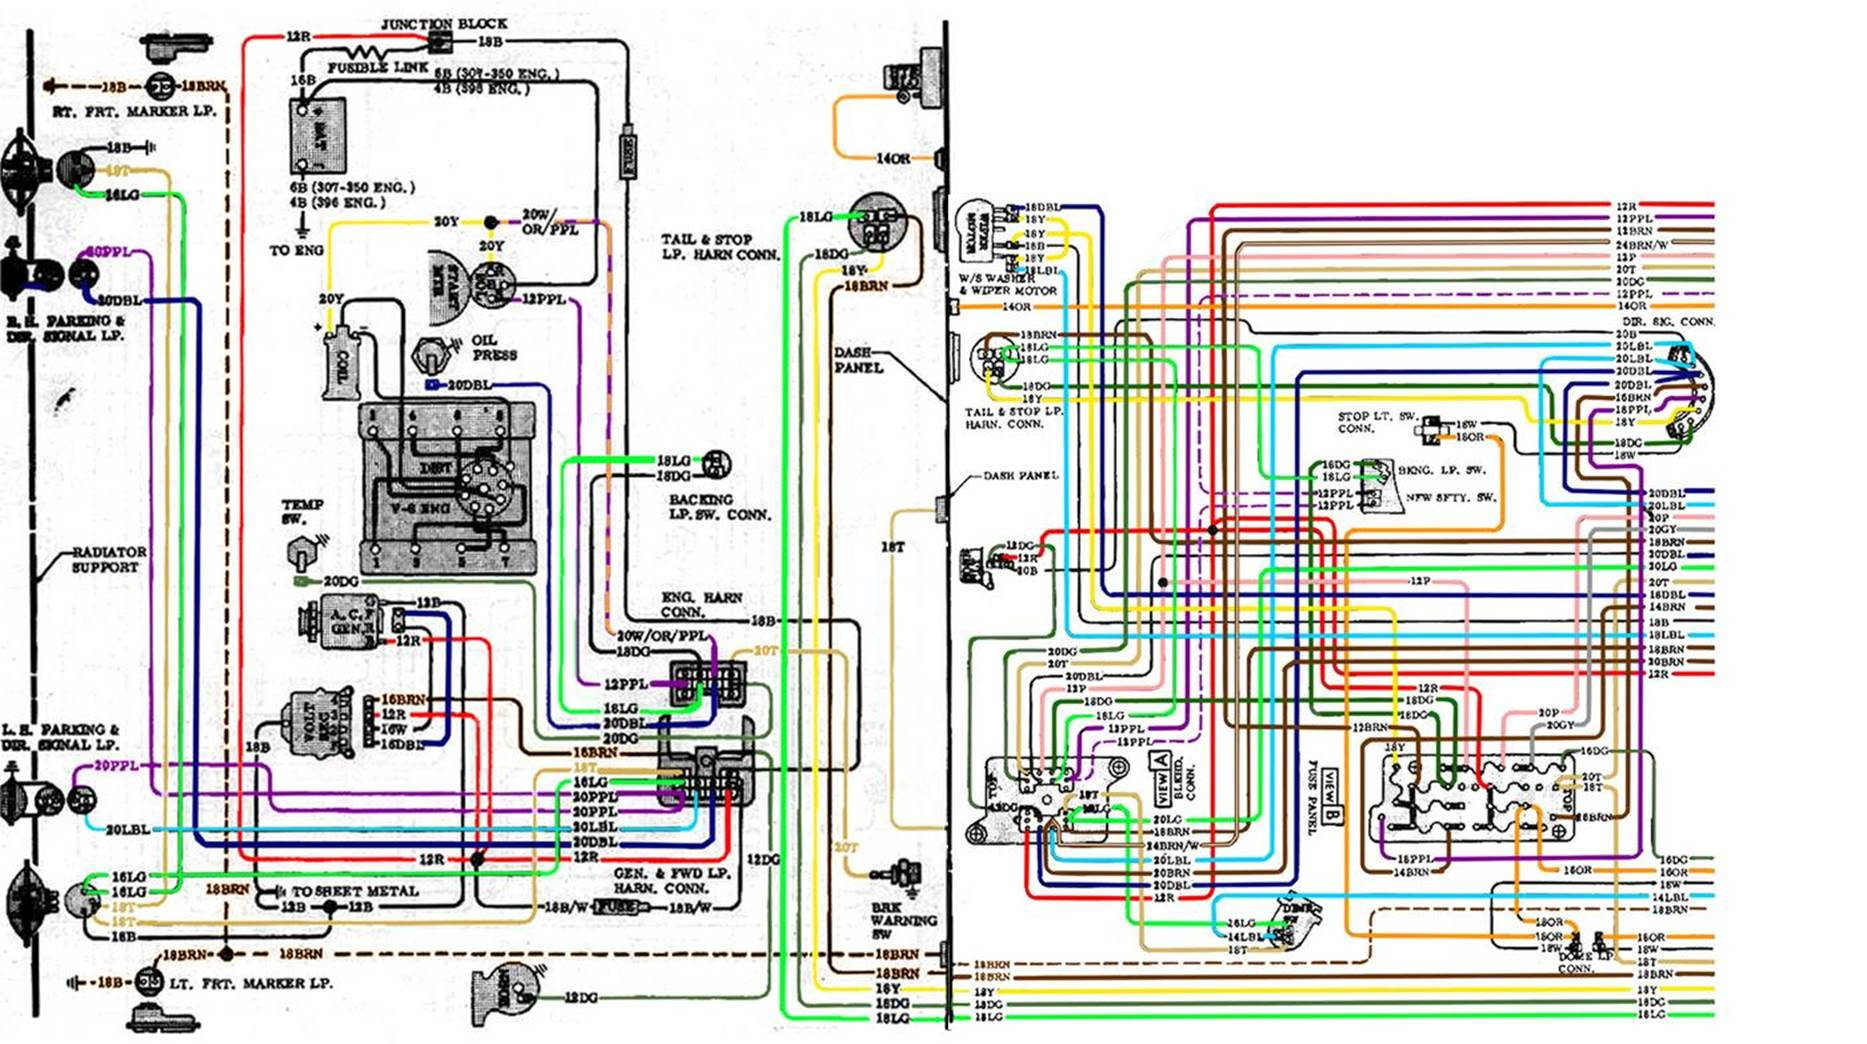 67 72 chevy wiring diagram 71 chevelle wiring schematic 71 Chevelle Wiring Diagram #1